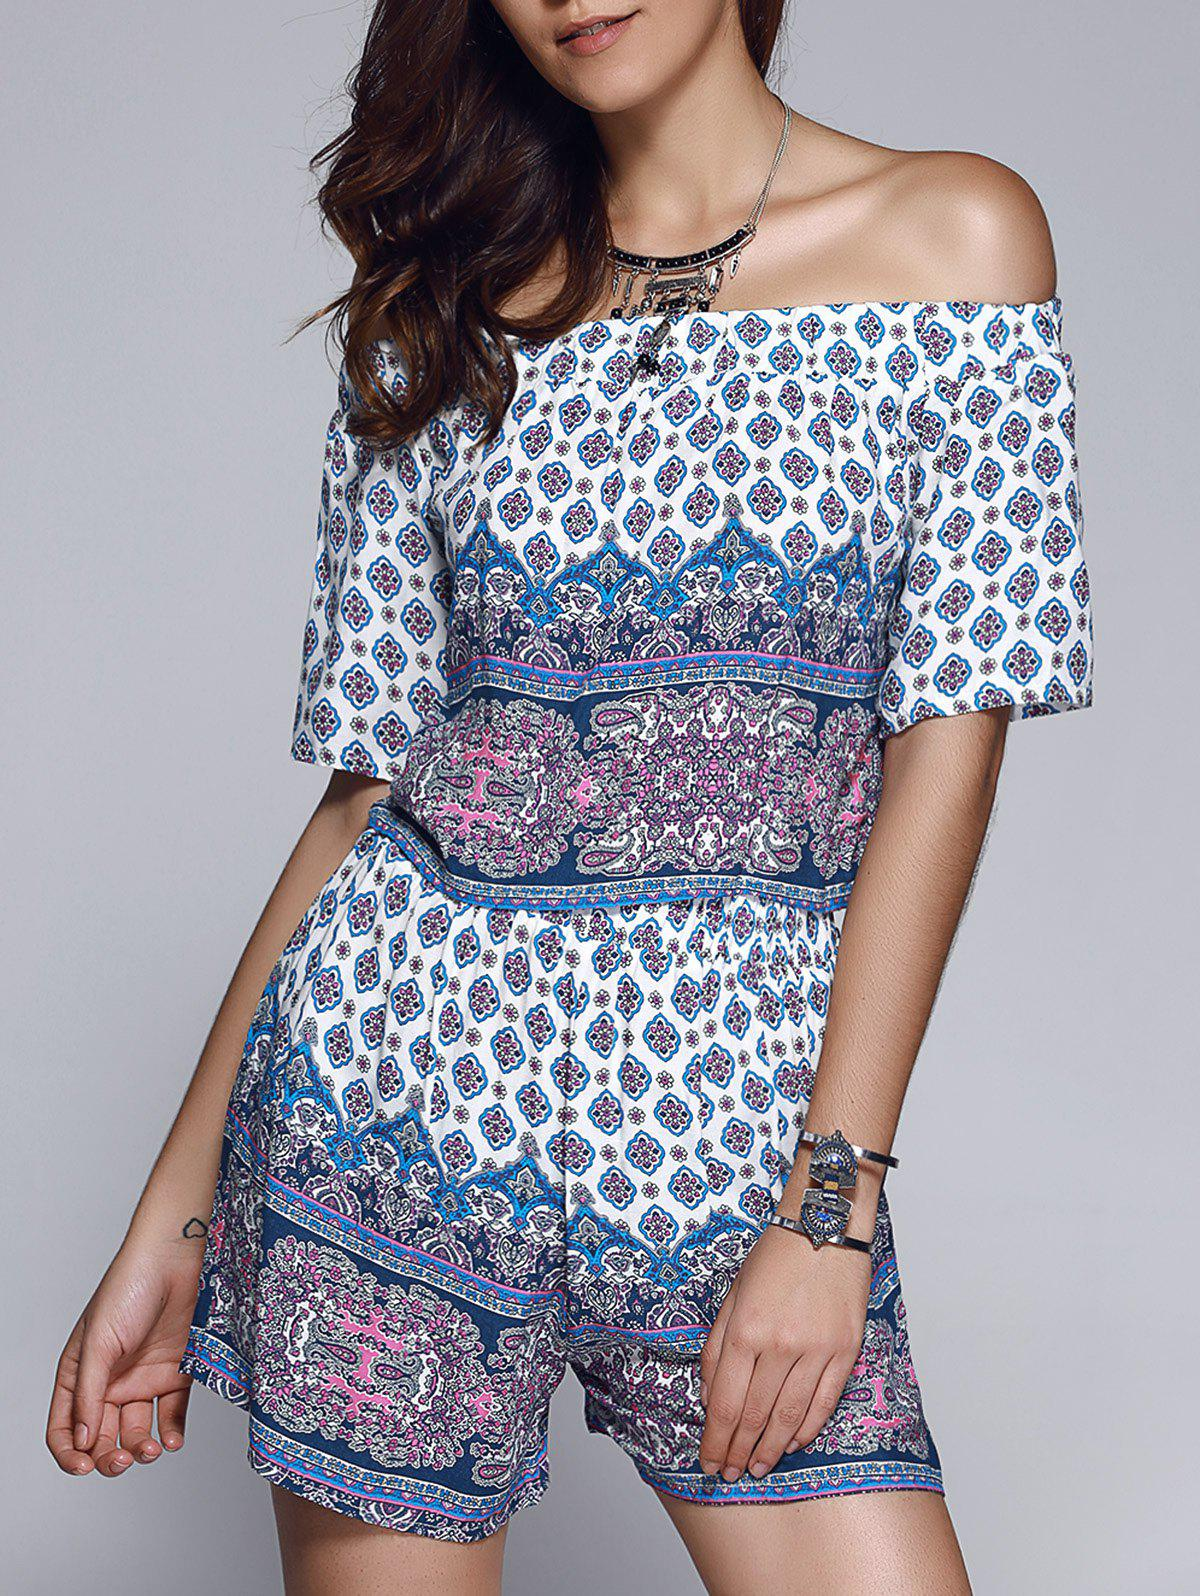 Ethnic Style Printed Women's Off The Shoulder Crop Top + Shorts Twinset - COLORMIX L